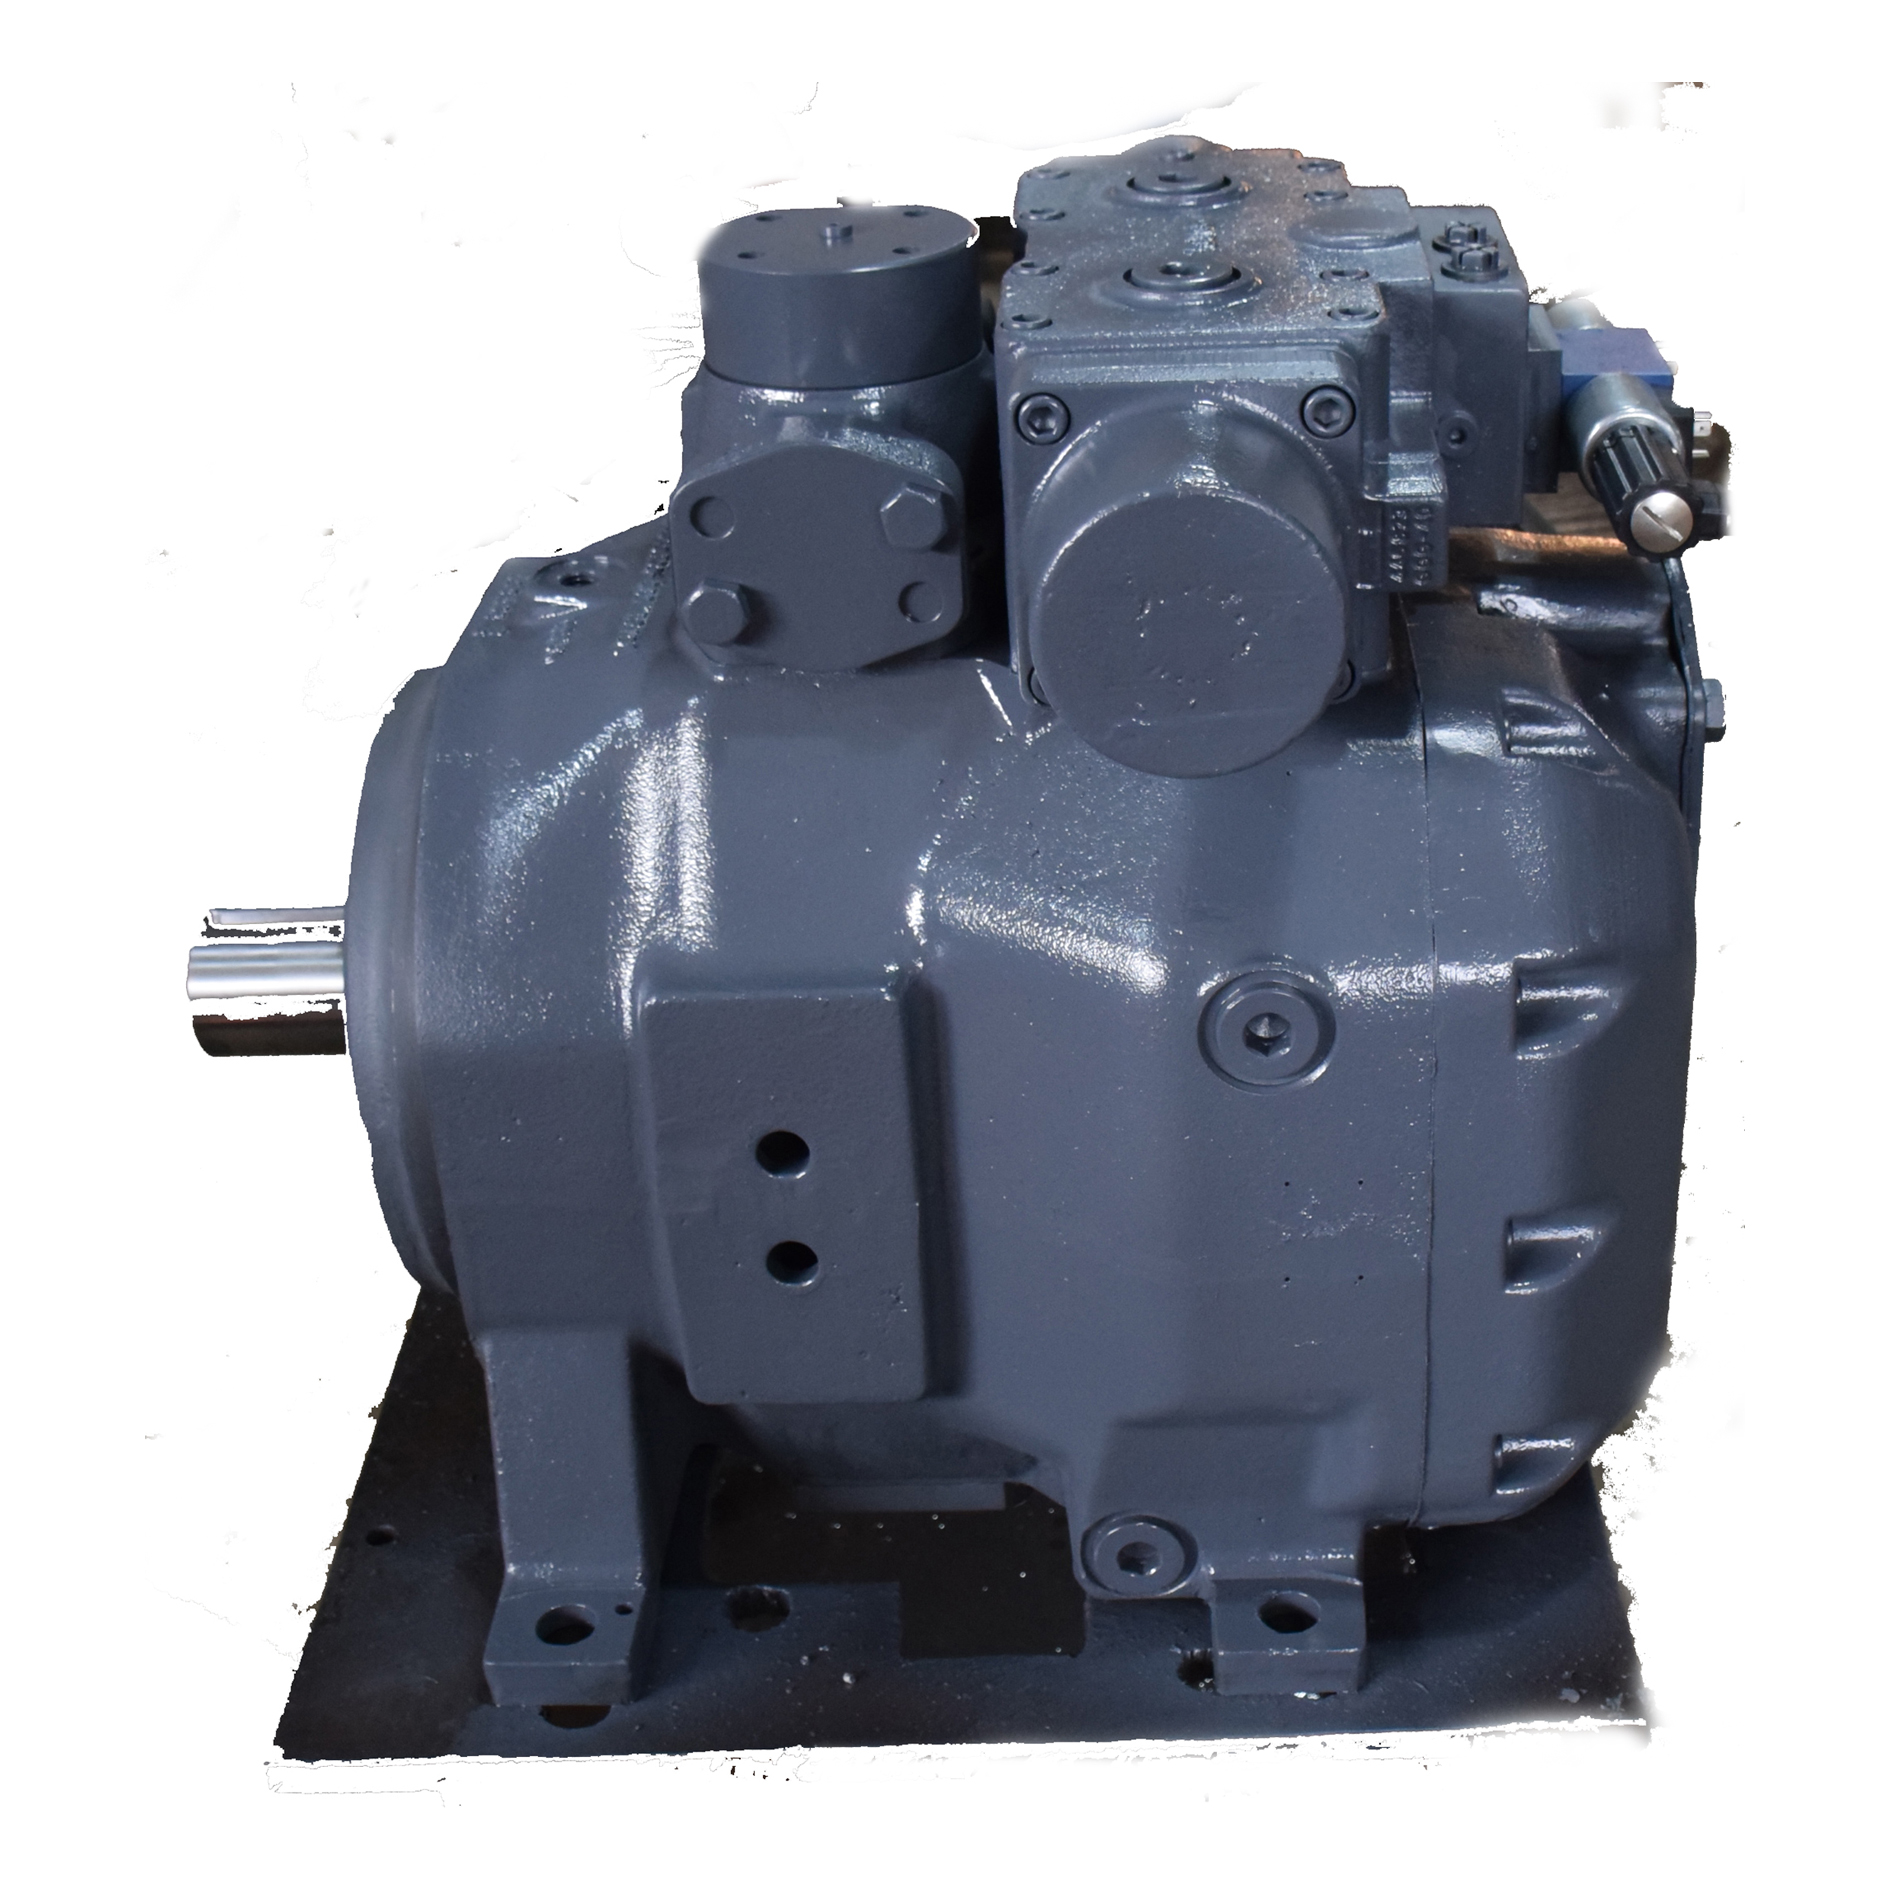 Hydromatik A2V500 (AA2V500) Axial Piston Variable Displacement Pump Rotating Group & Replacement Parts